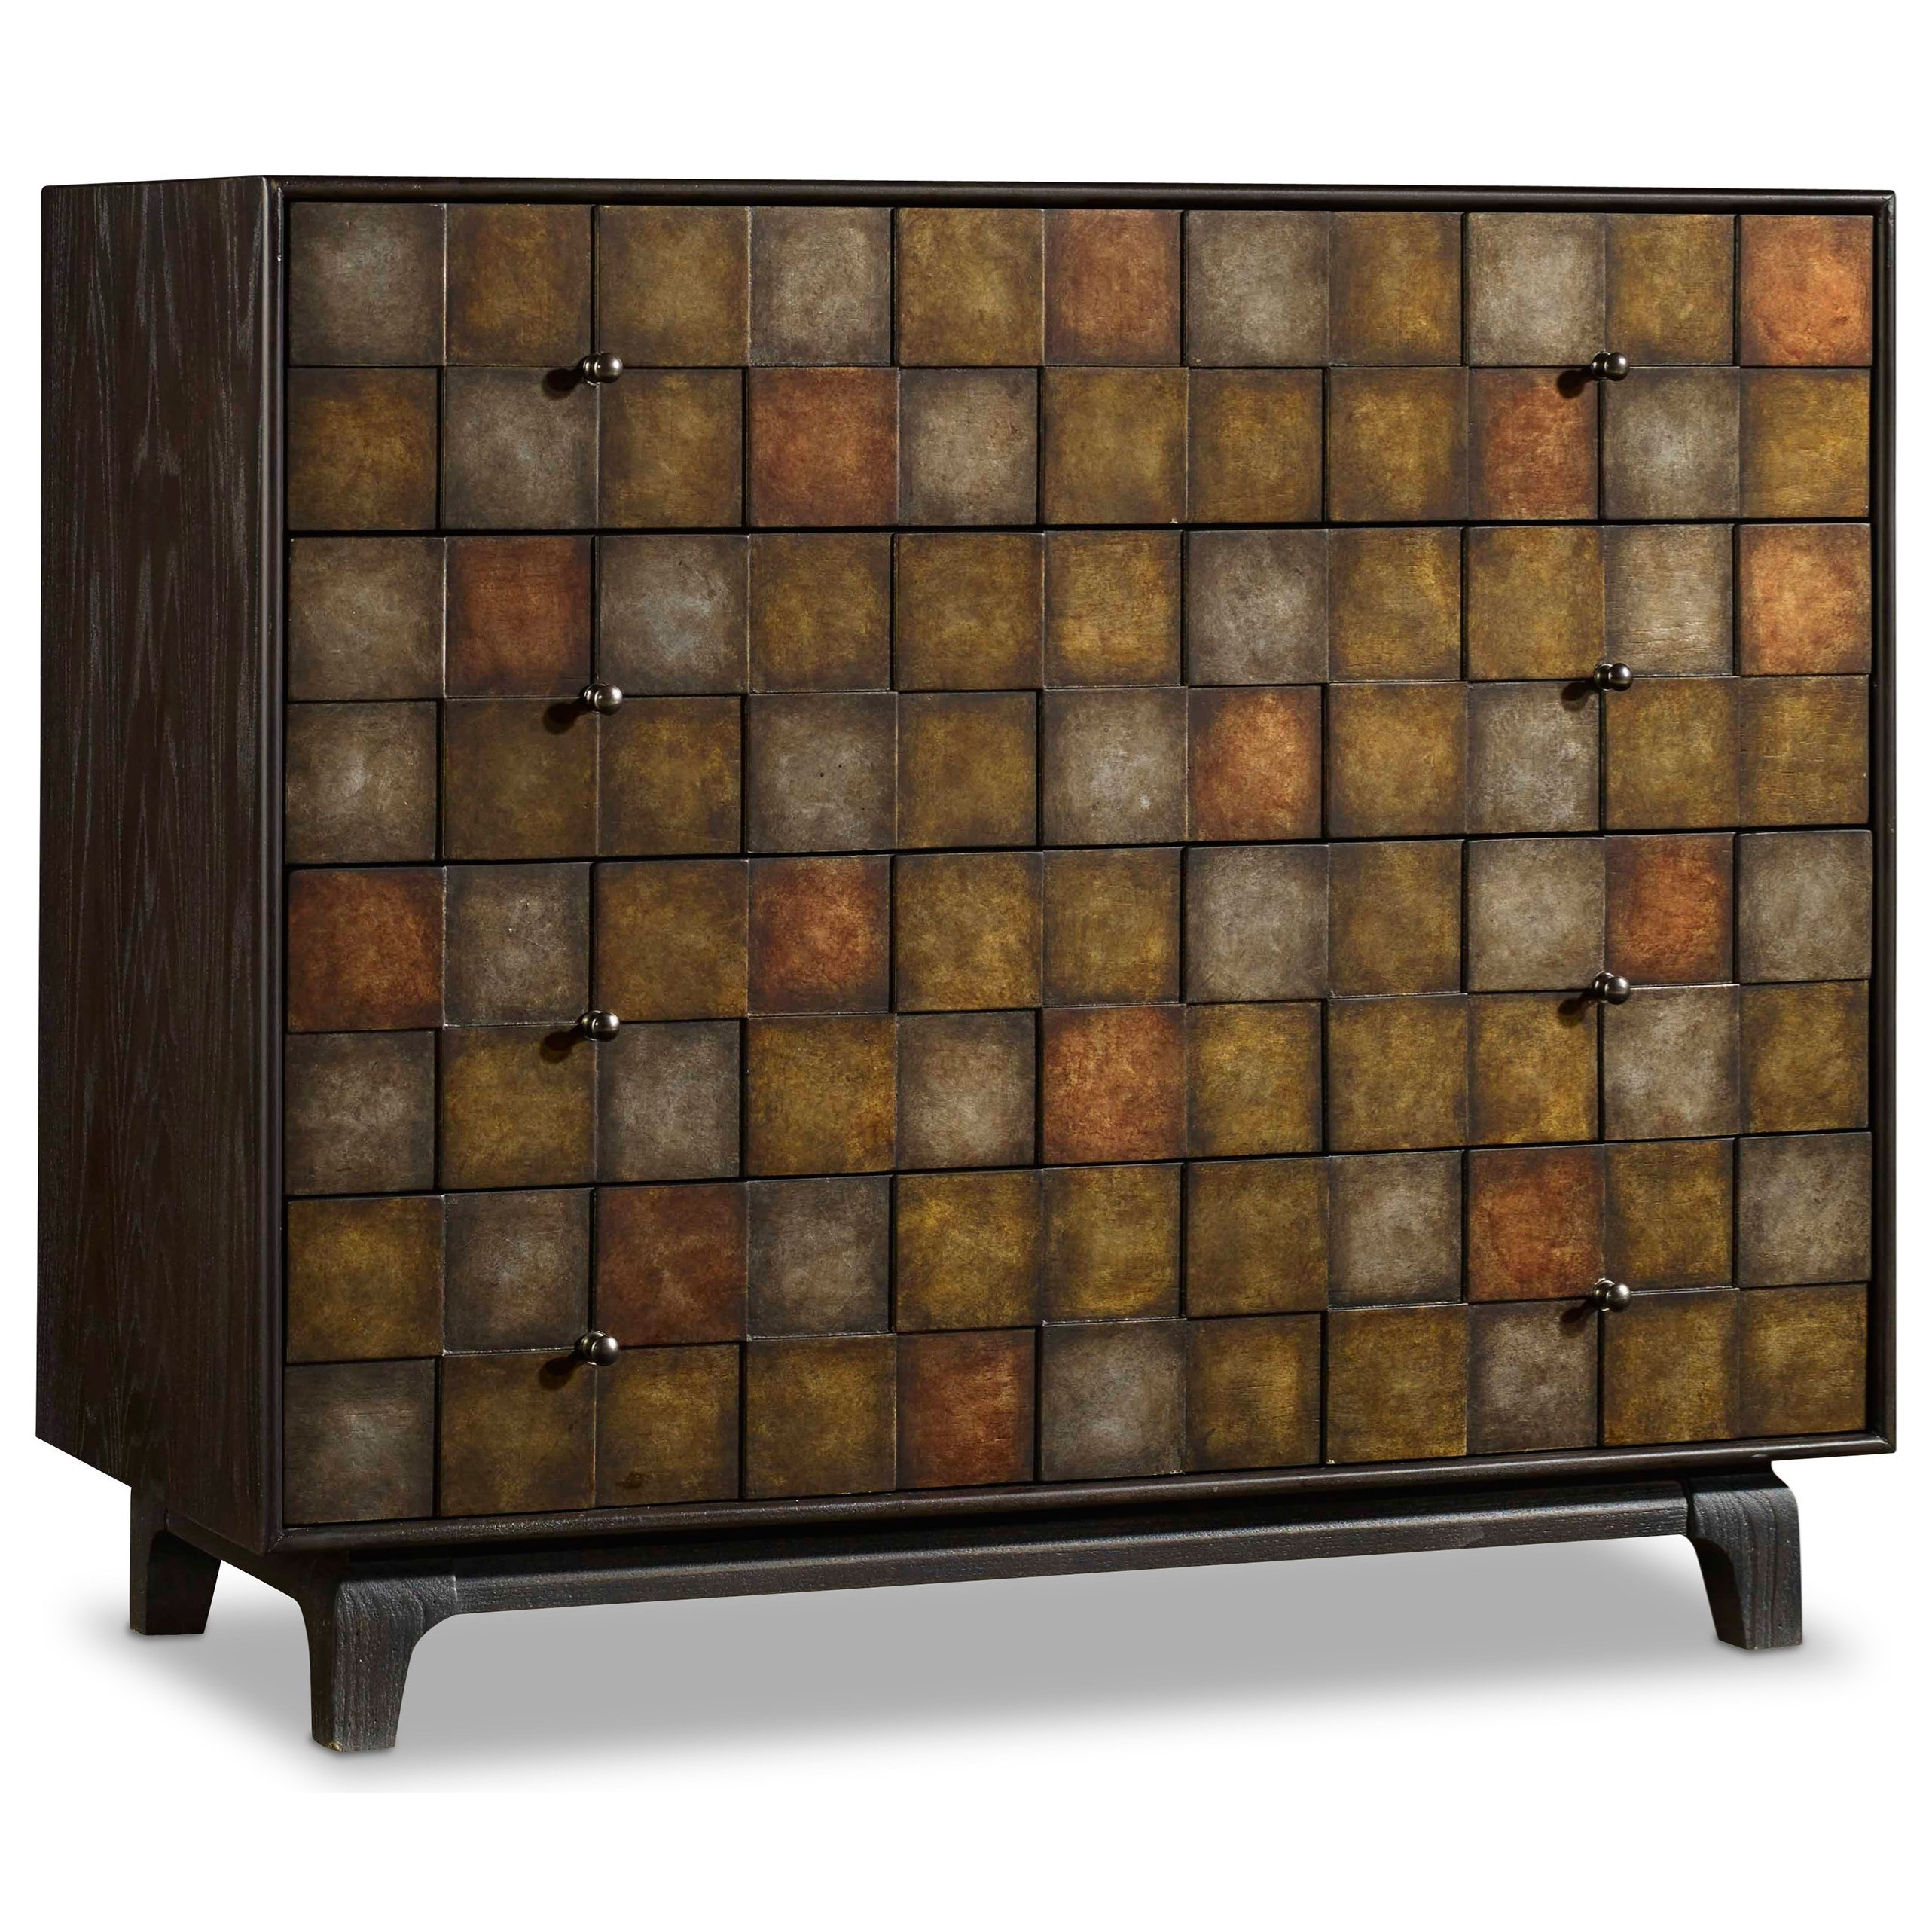 Hooker Furniture Mélange Gentry Chest - Item Number: 638-85233